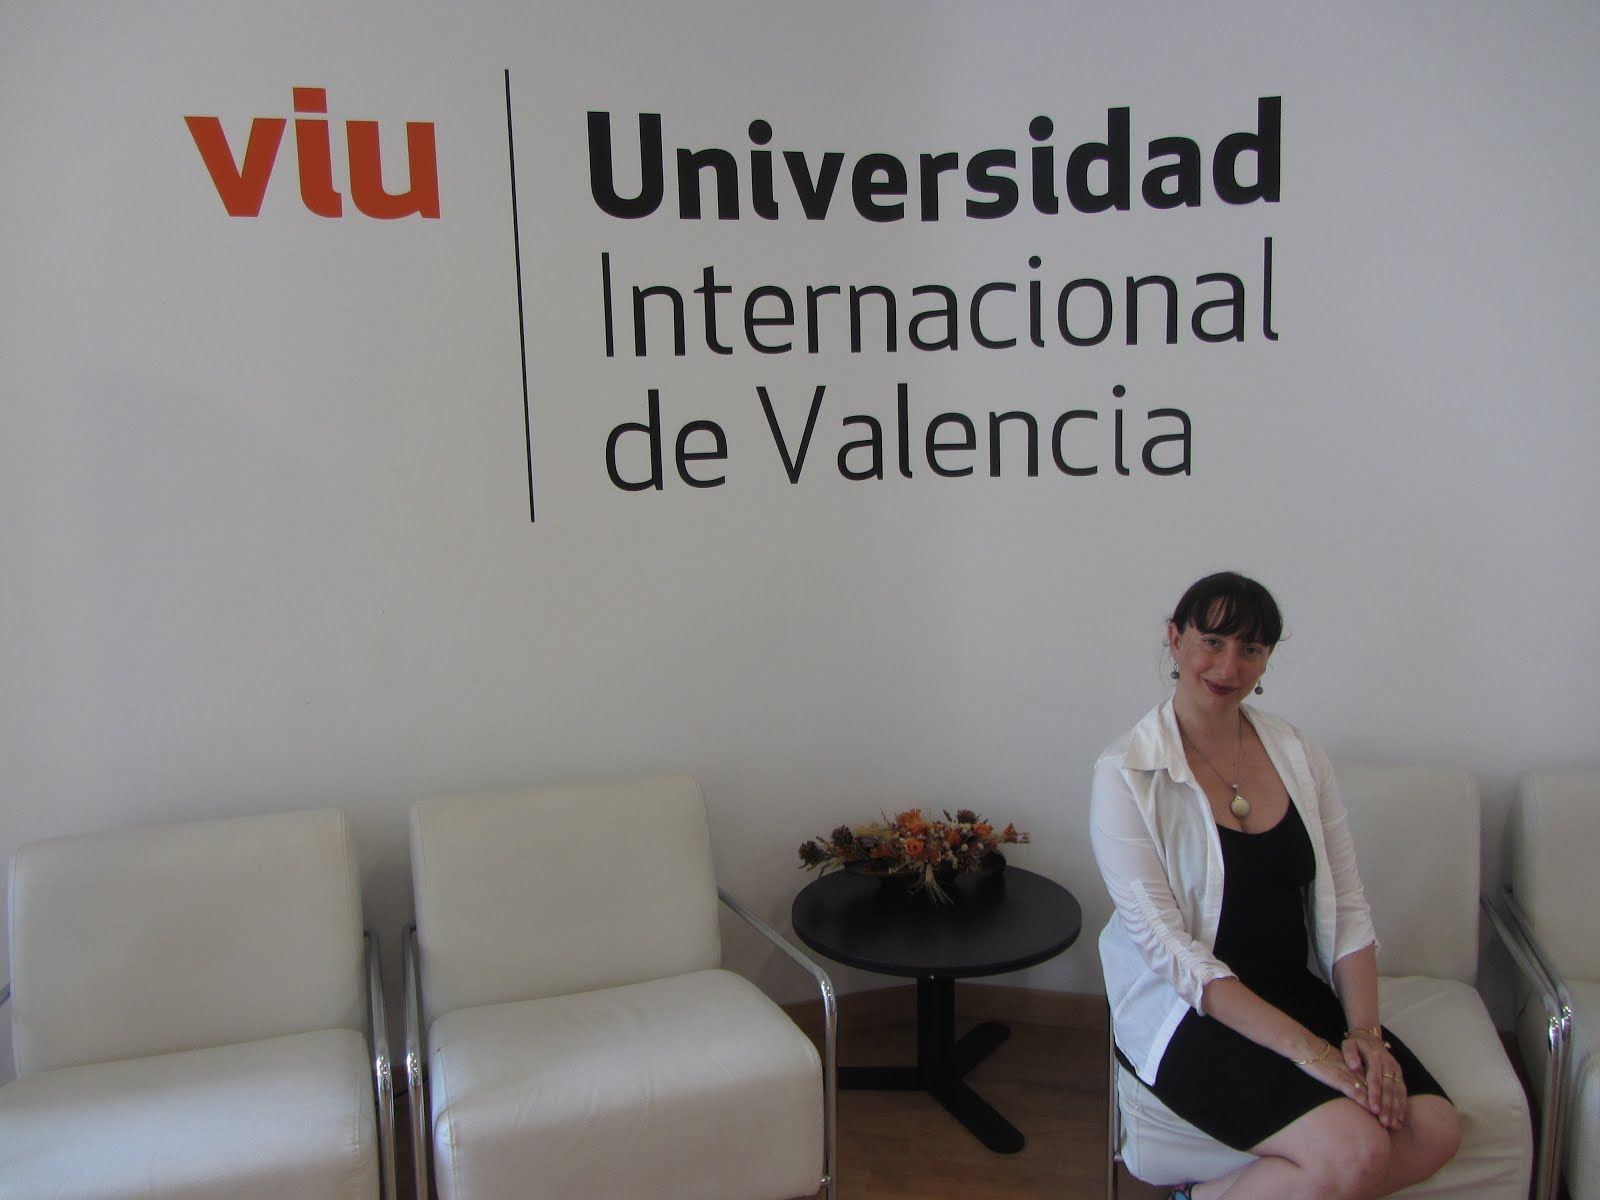 VIU (Valencian International University)